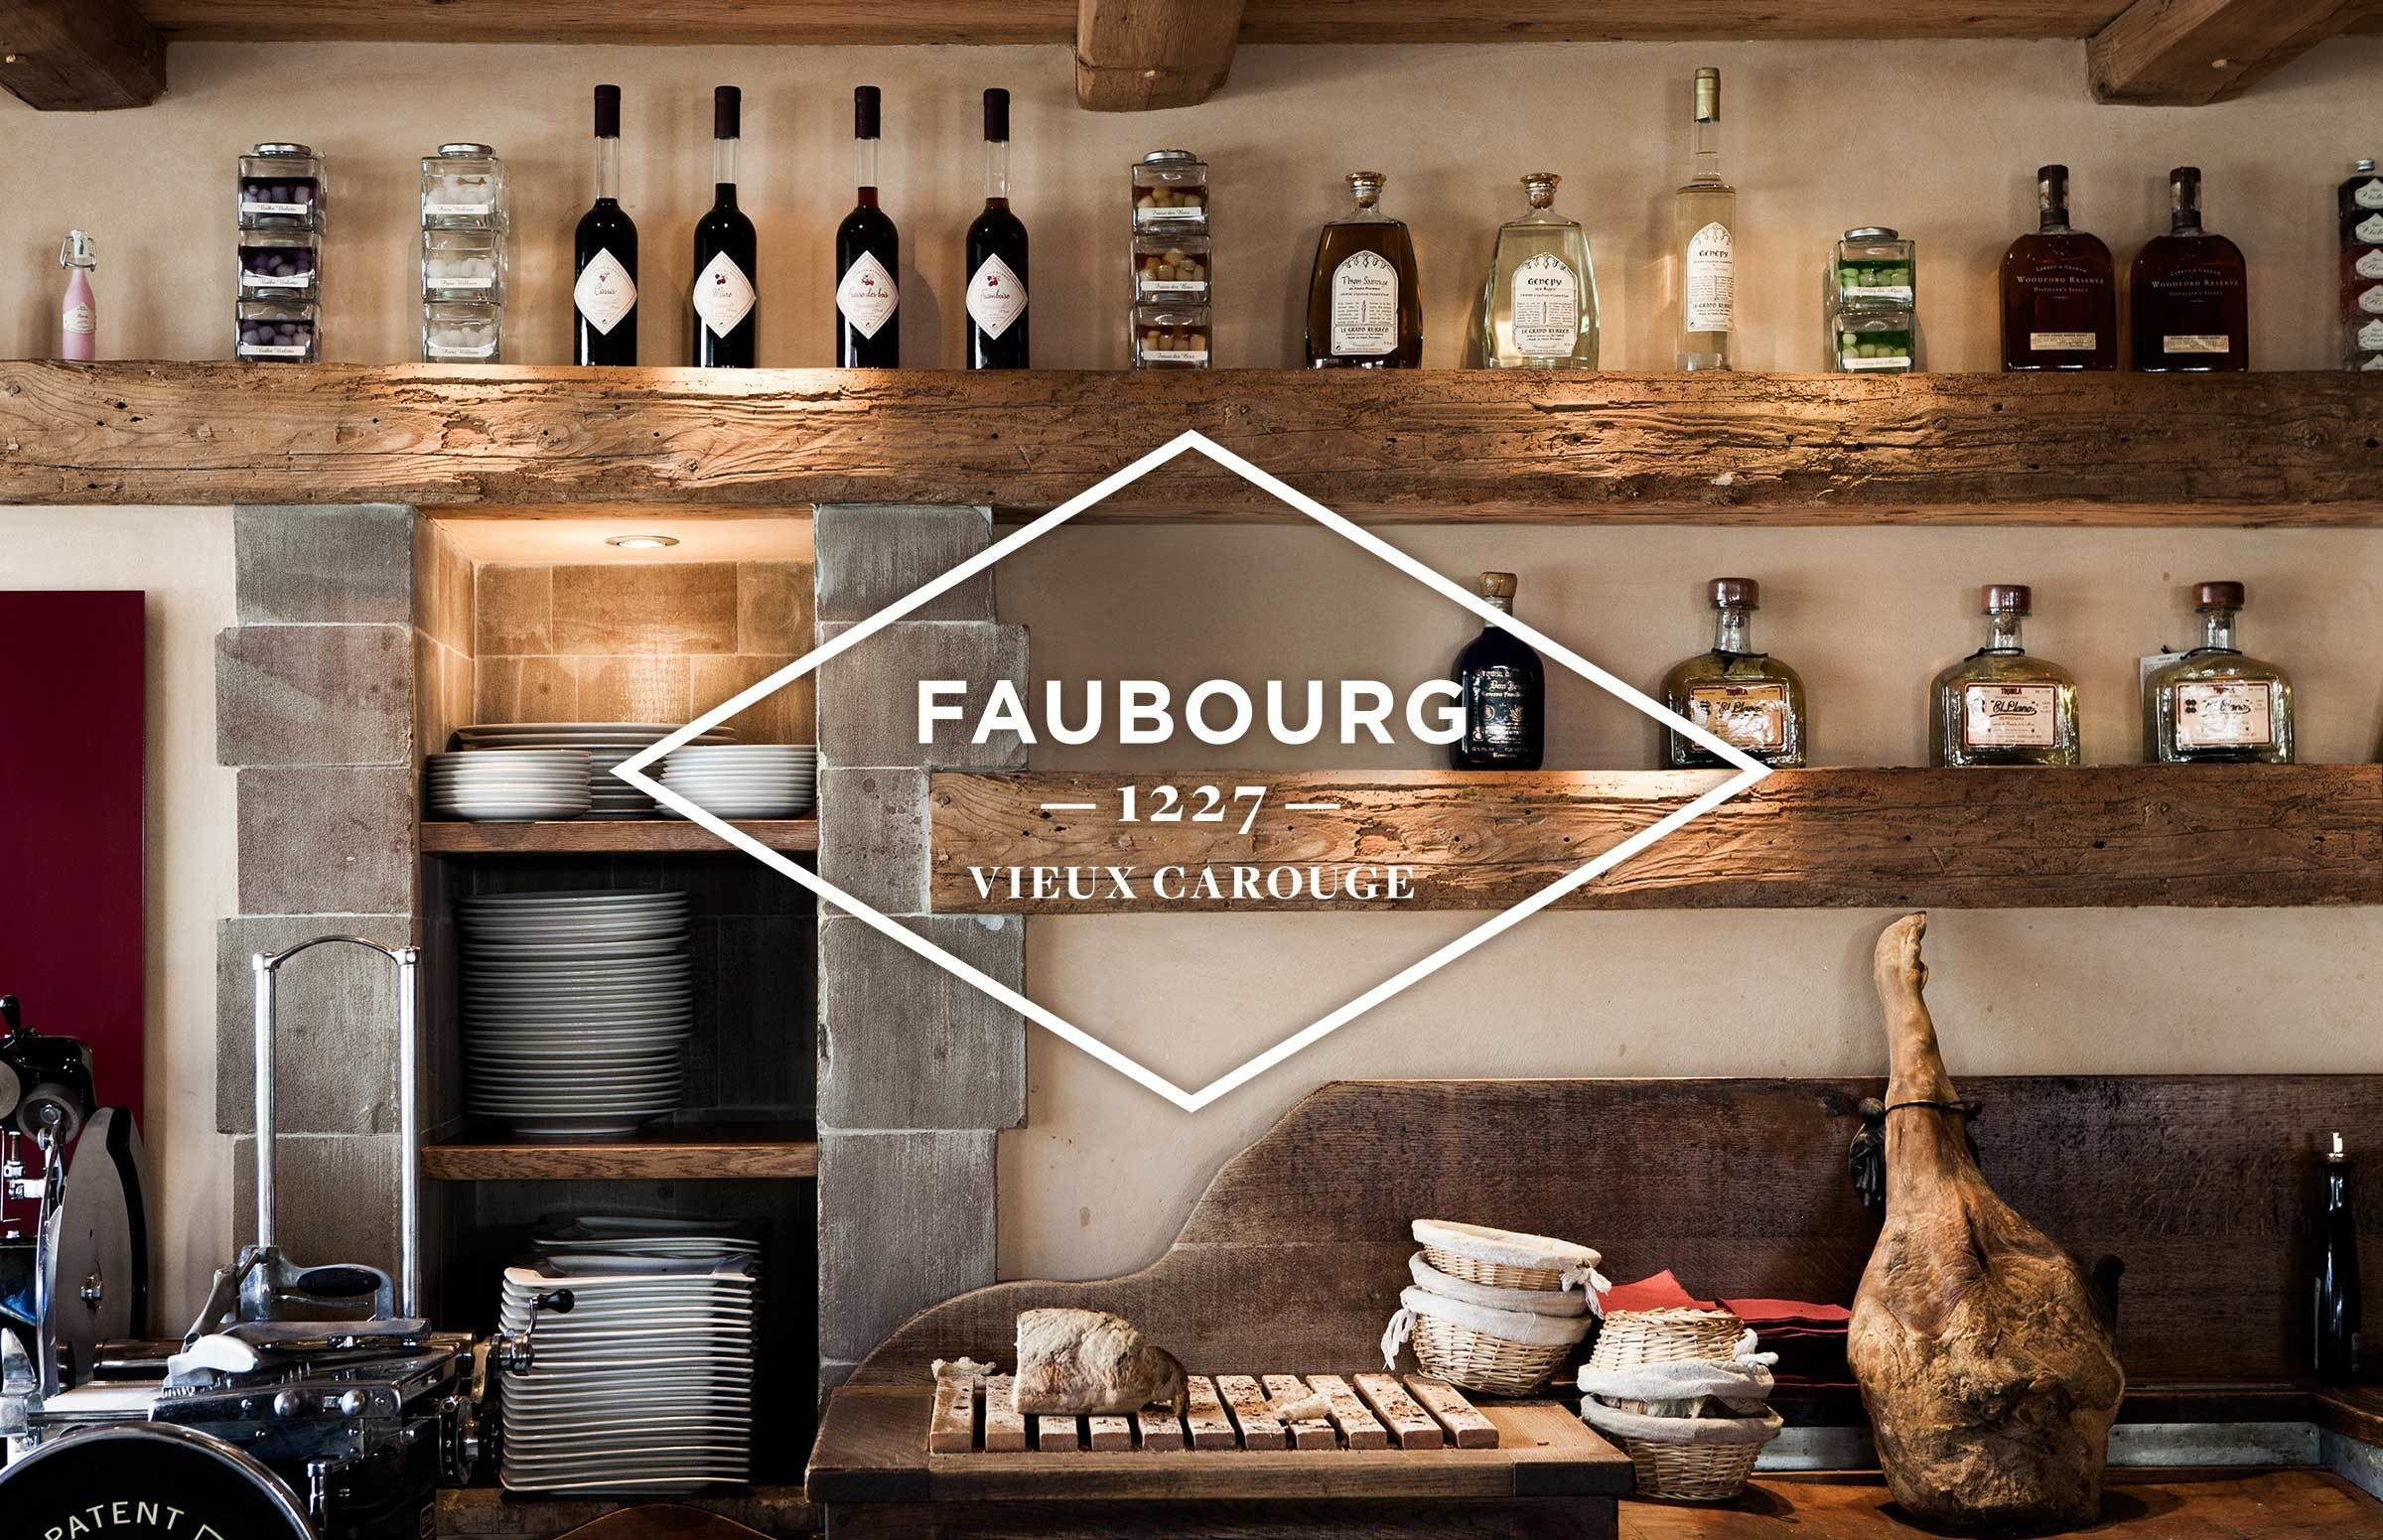 Faubourg_1_160302_091433